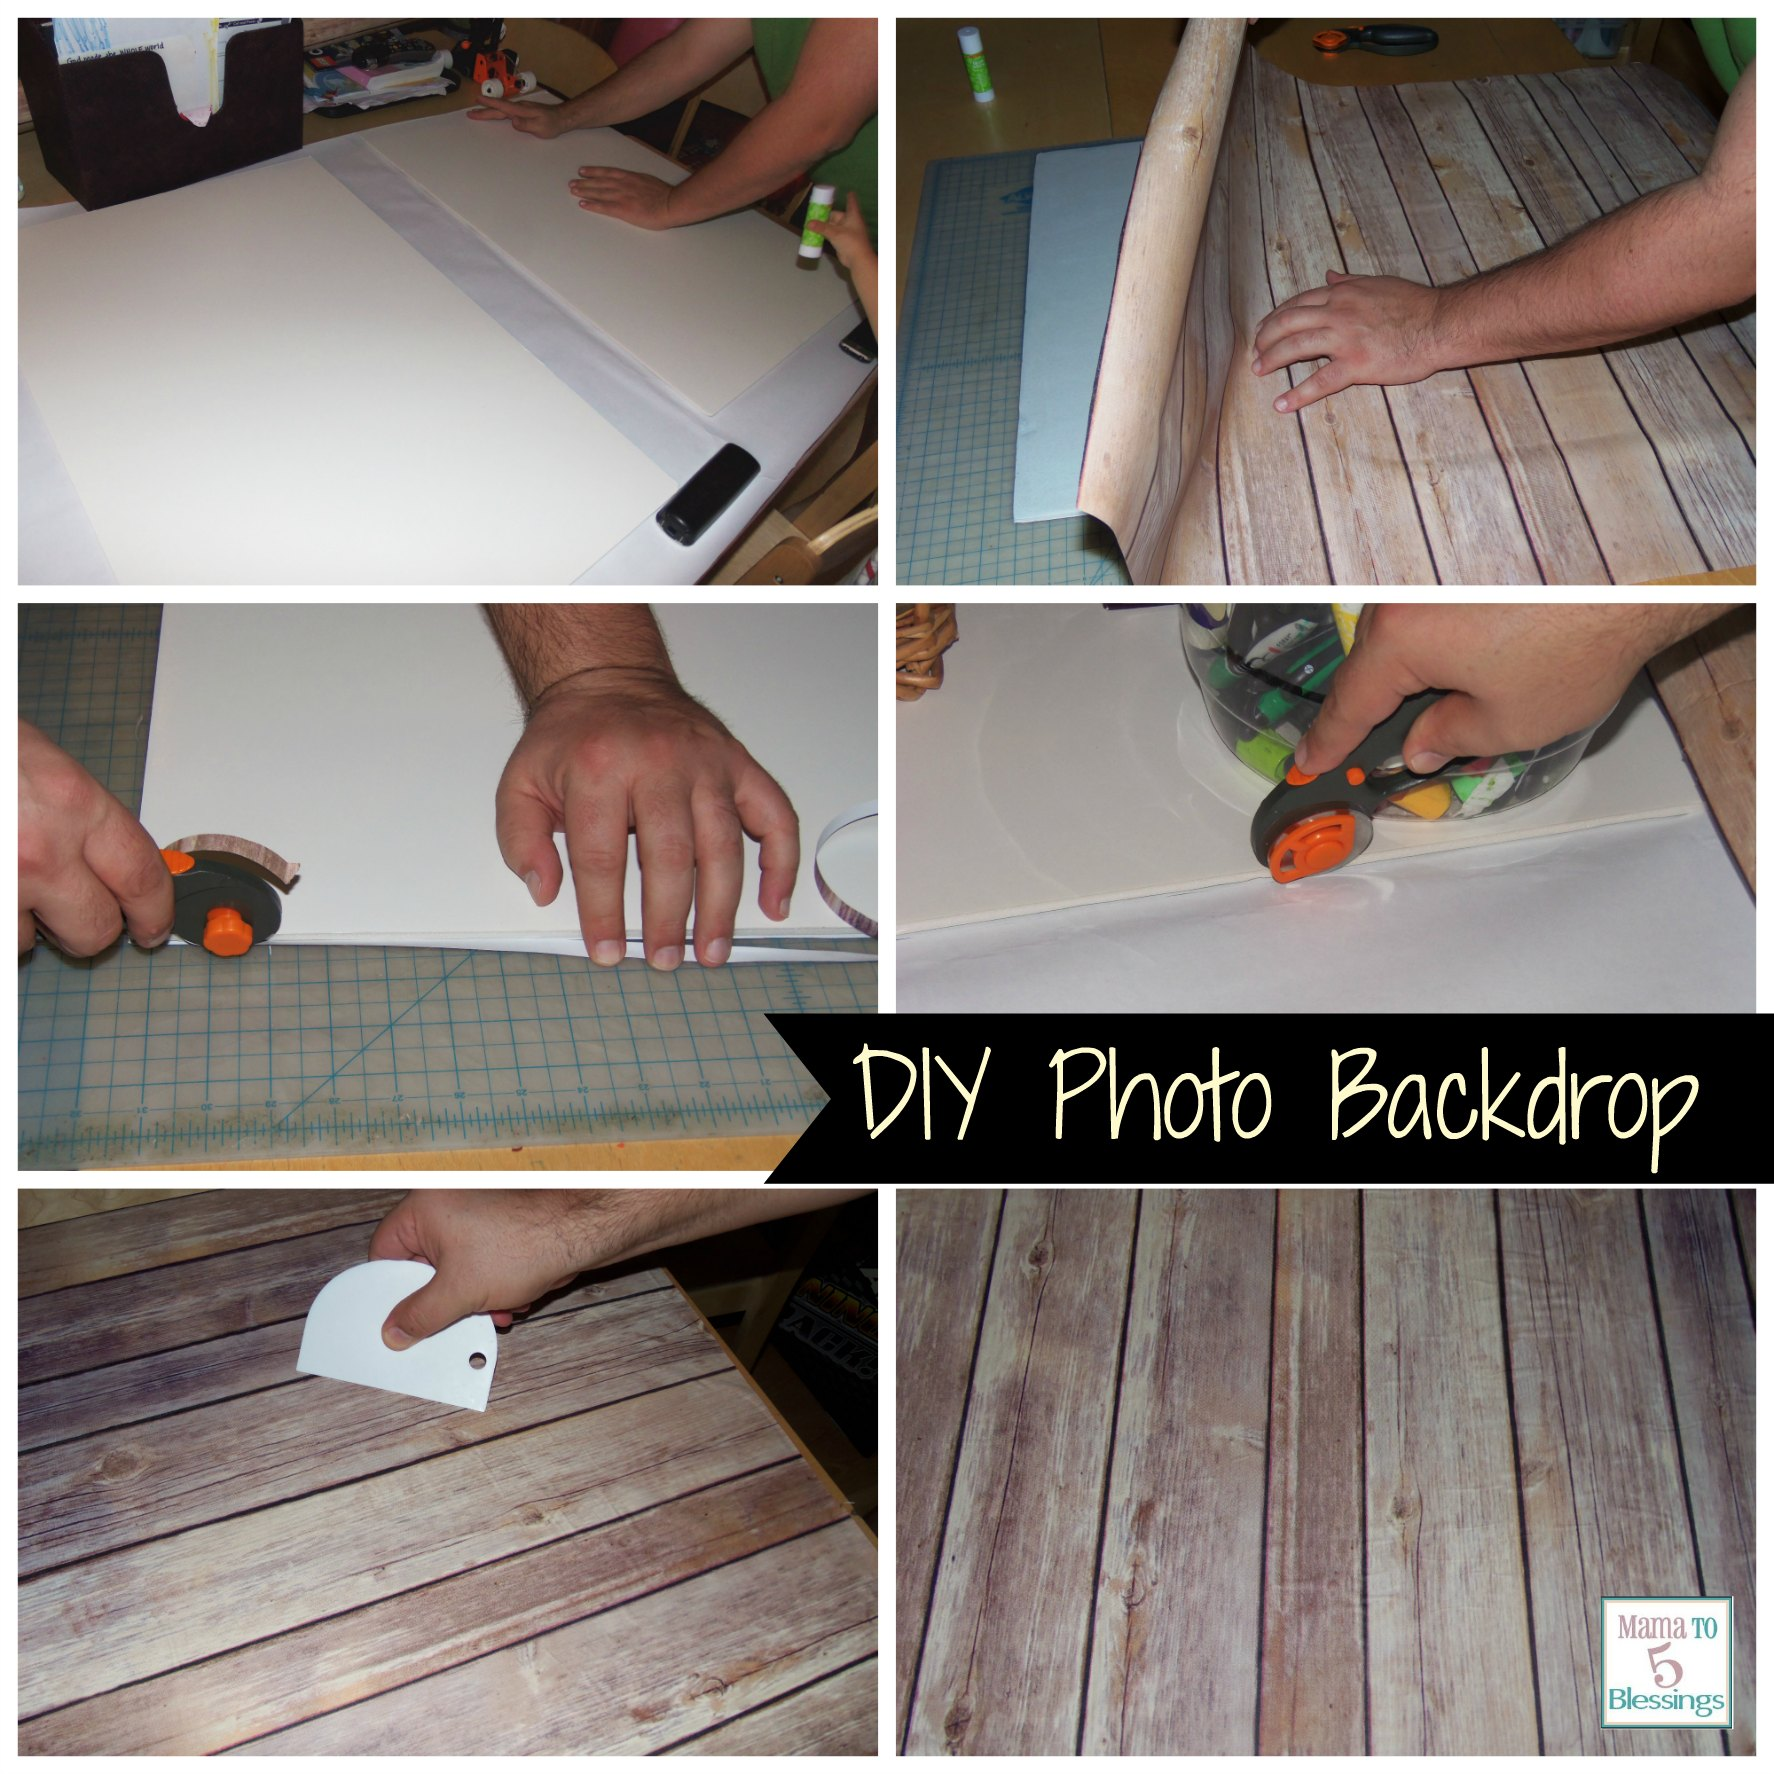 Blogging Photography Photography Backdrops Pictures Photo